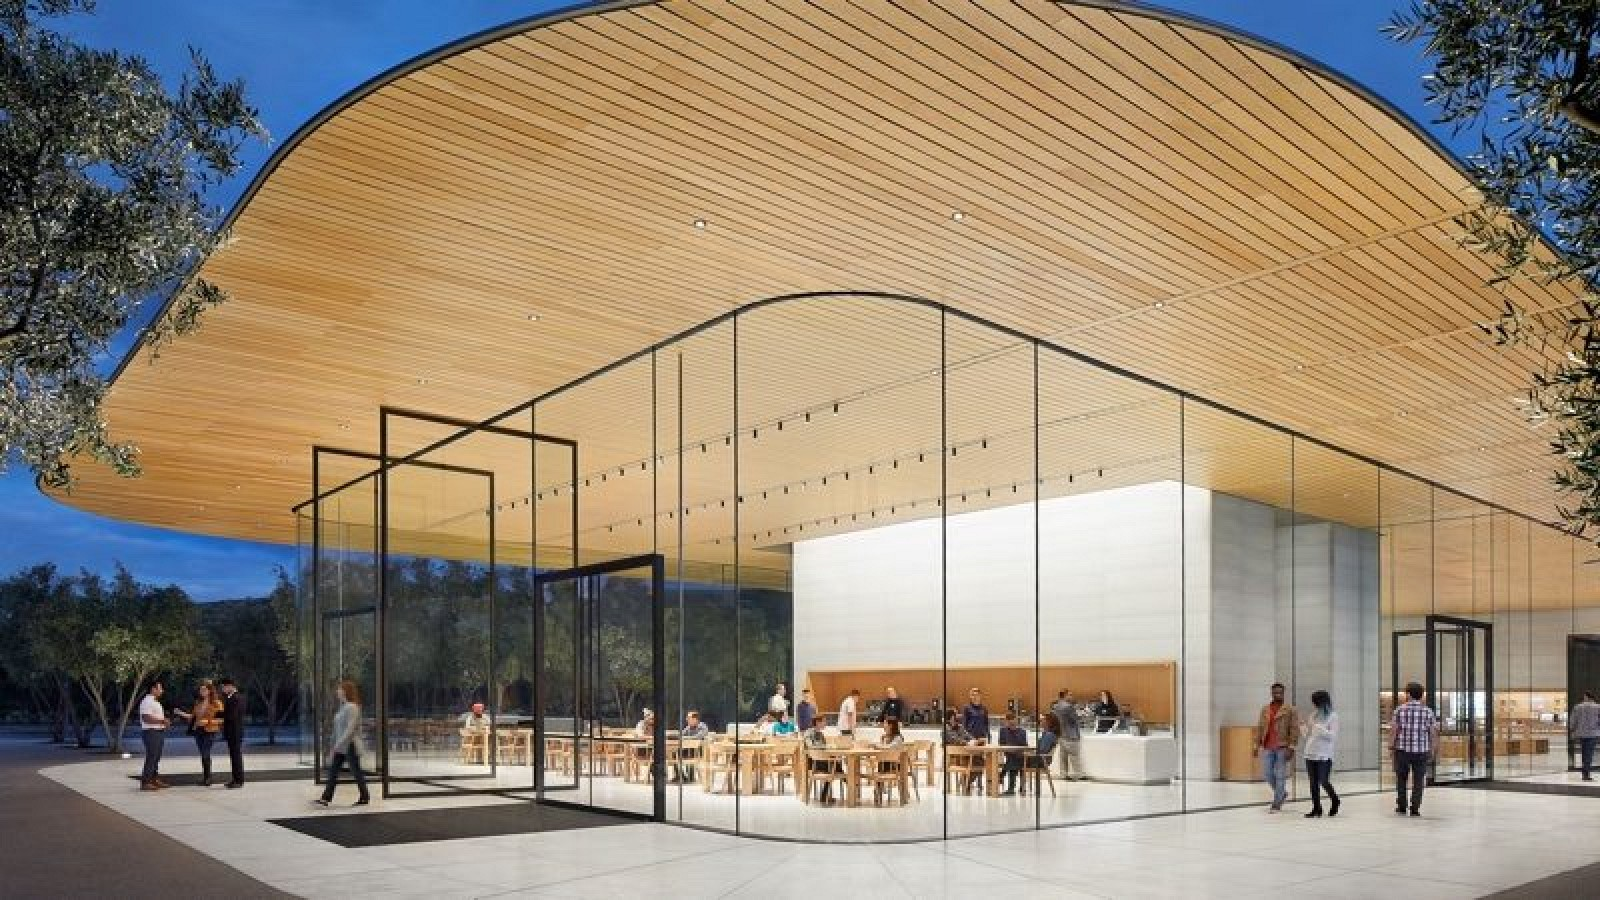 Apple iStore Comes to the Pavilion Take a bite of the Apple - KwaZulu-Natal's second iStore will be opening at the Pav in November! As an Apple Premium Reseller, this eagerly awaited new iStore is the best place to shop for Macs, iPods, iPhones and accessories.